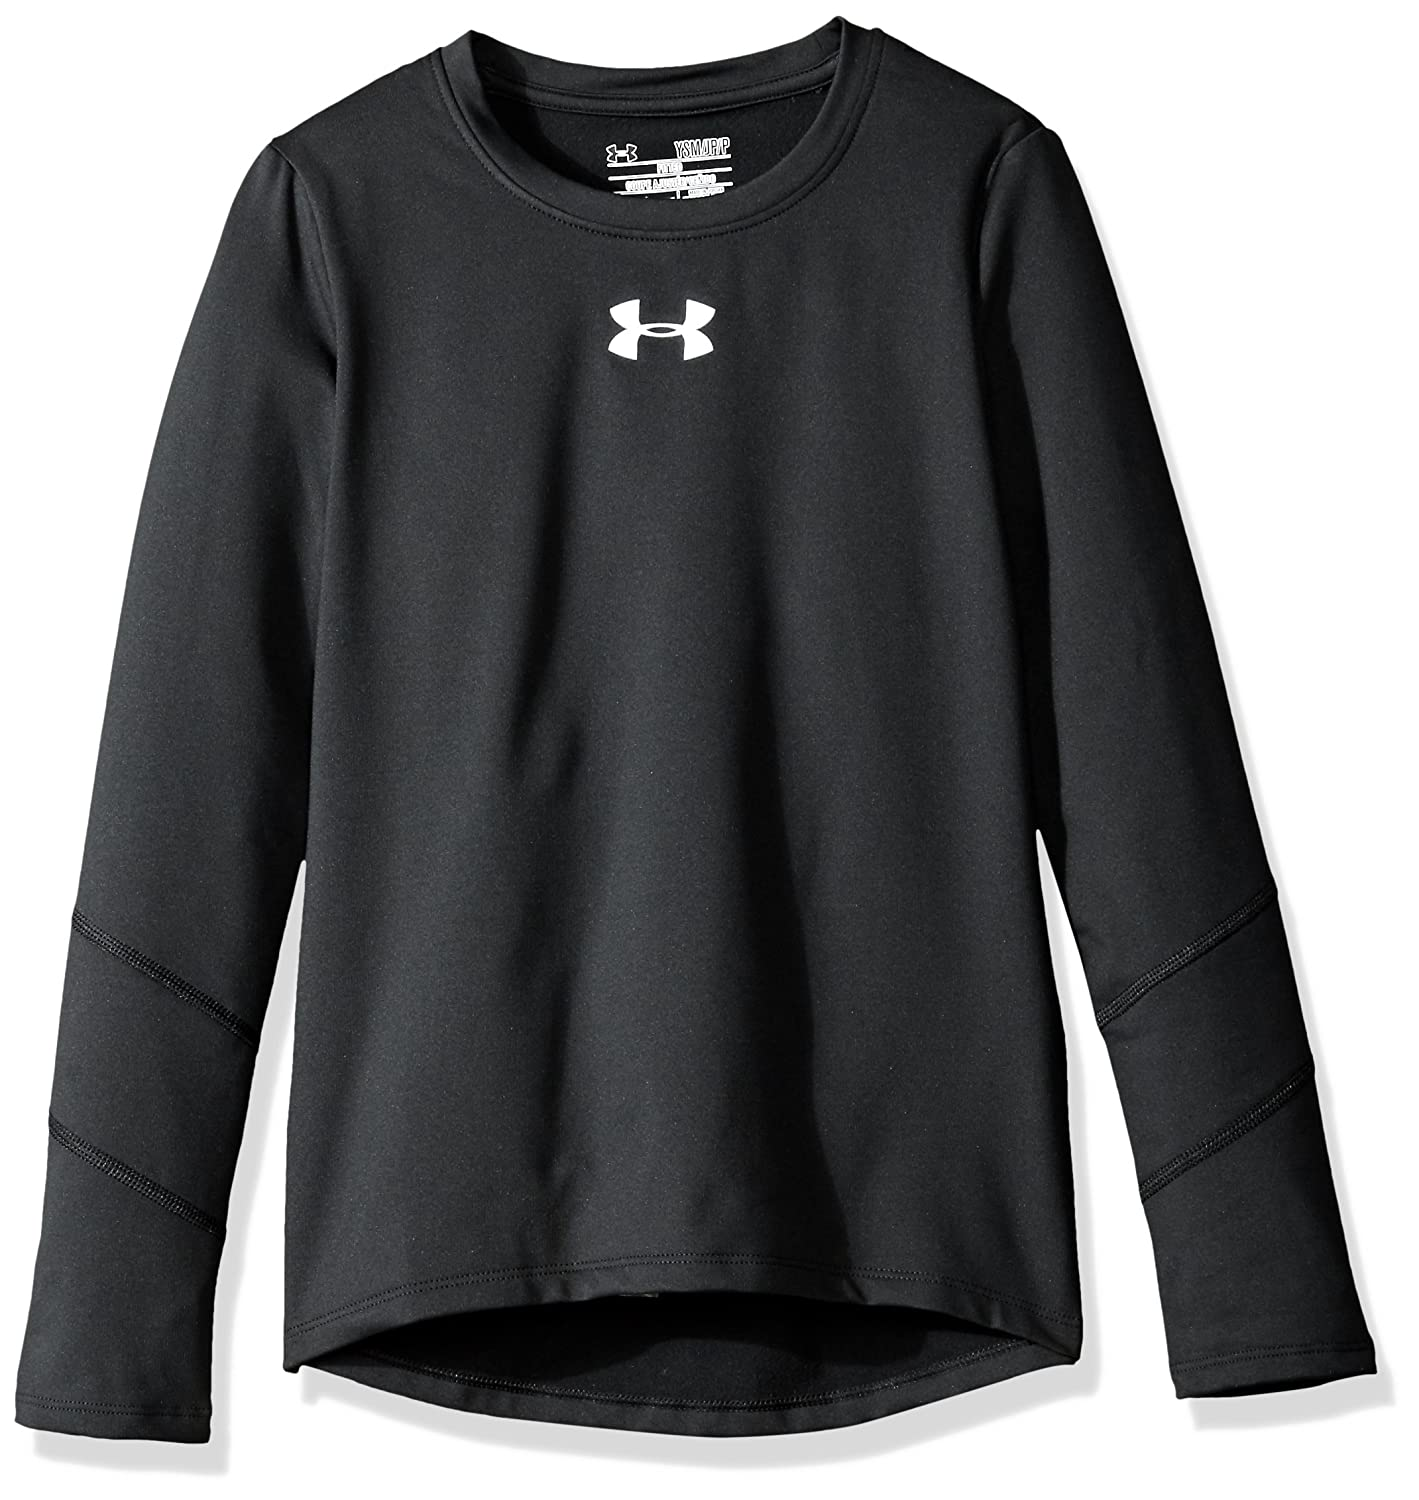 Under Armour Girls' ColdGear Long Sleeve